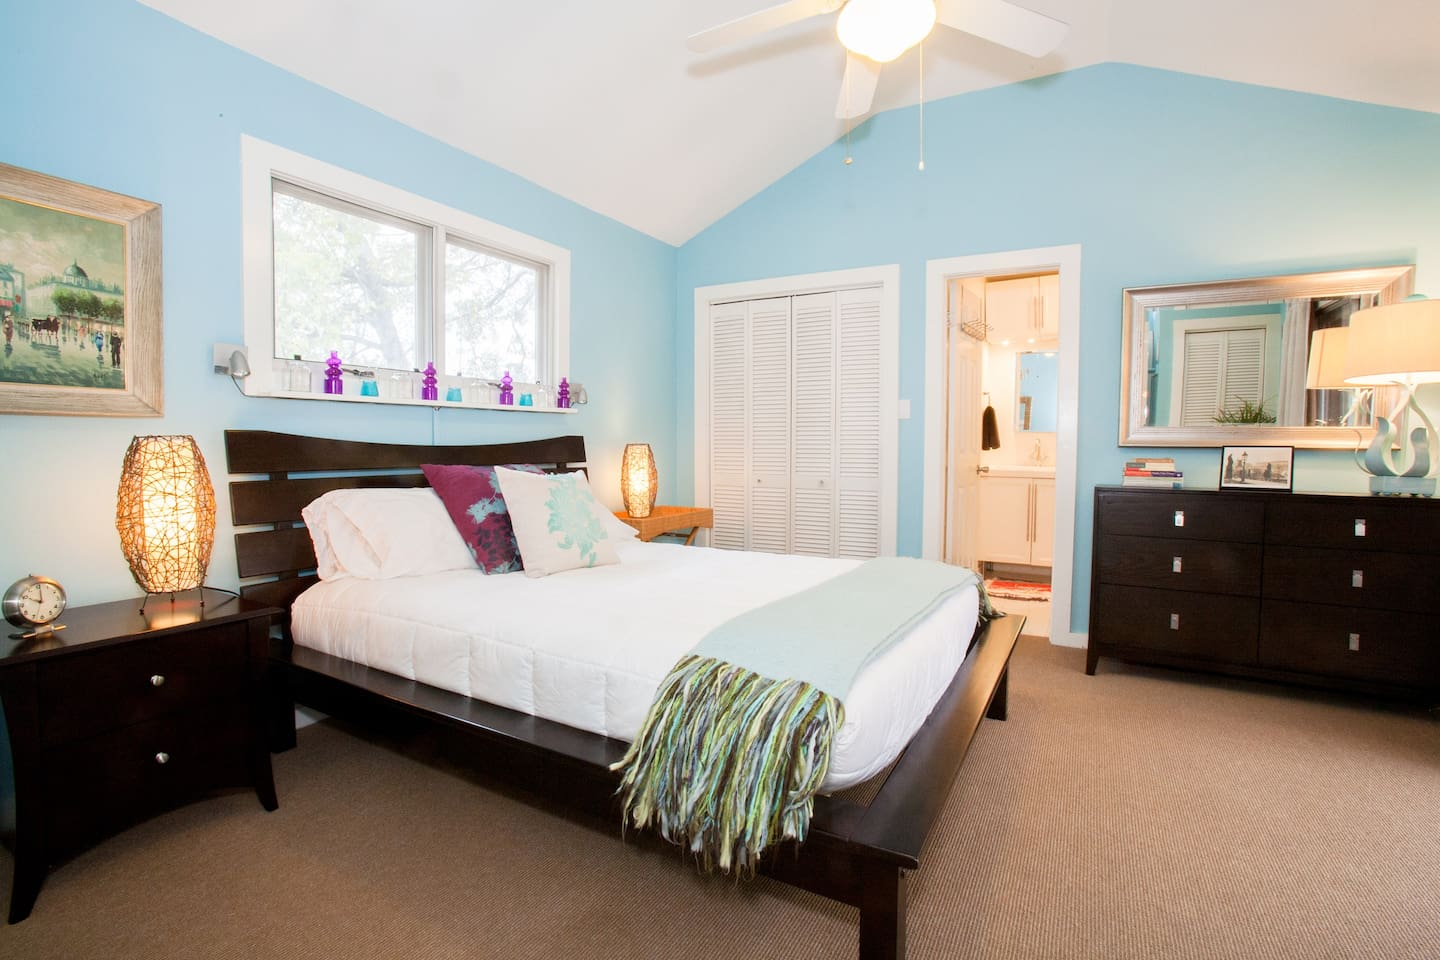 Our decadent master suite offers a cozy night's sleep after exploring all of the fun South Austin has to offer.